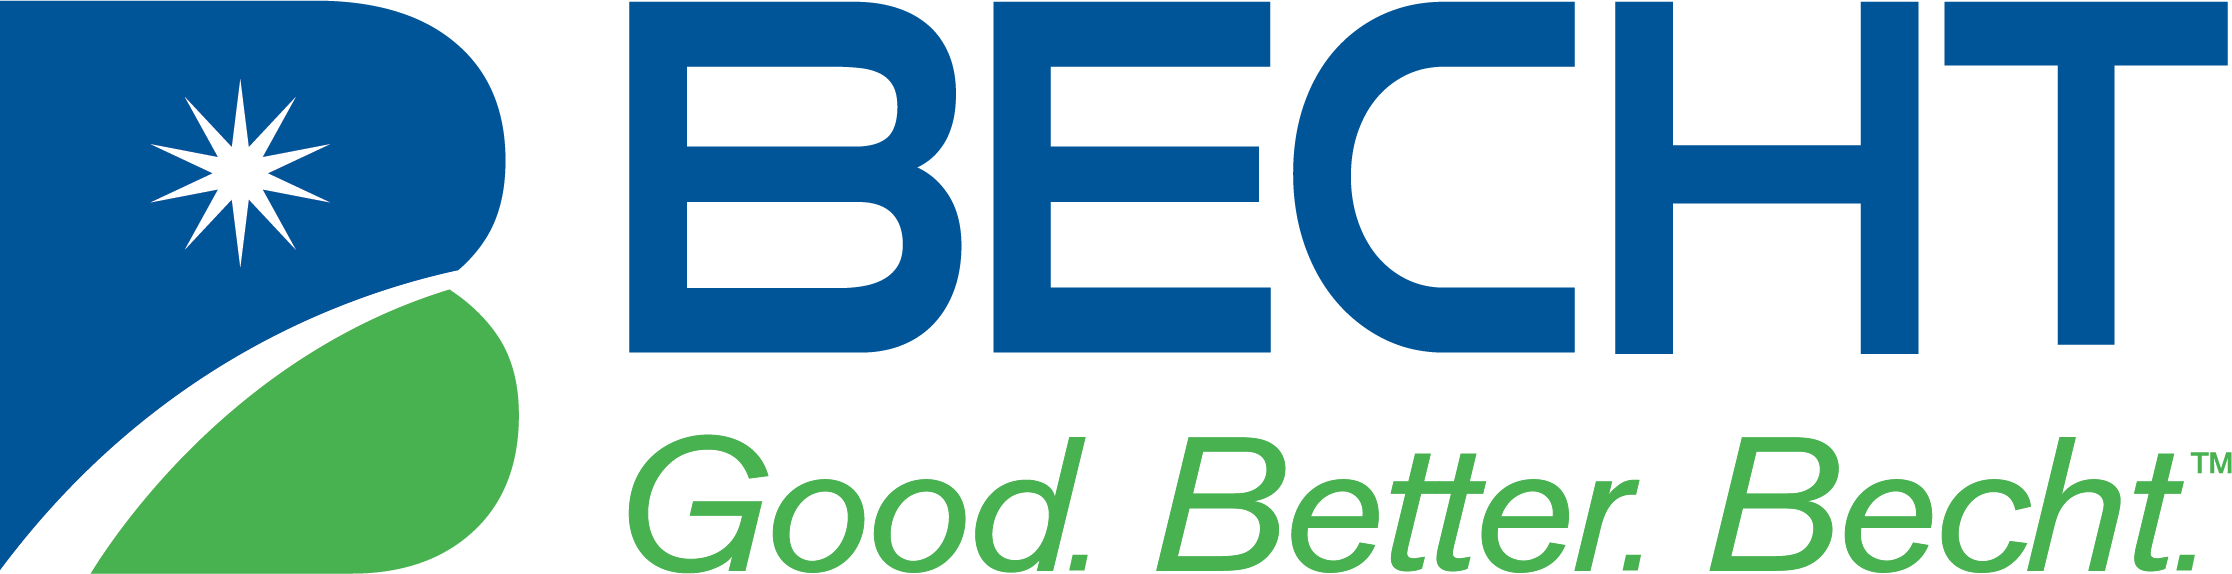 Becht Europe B.V. Officially Incorporated